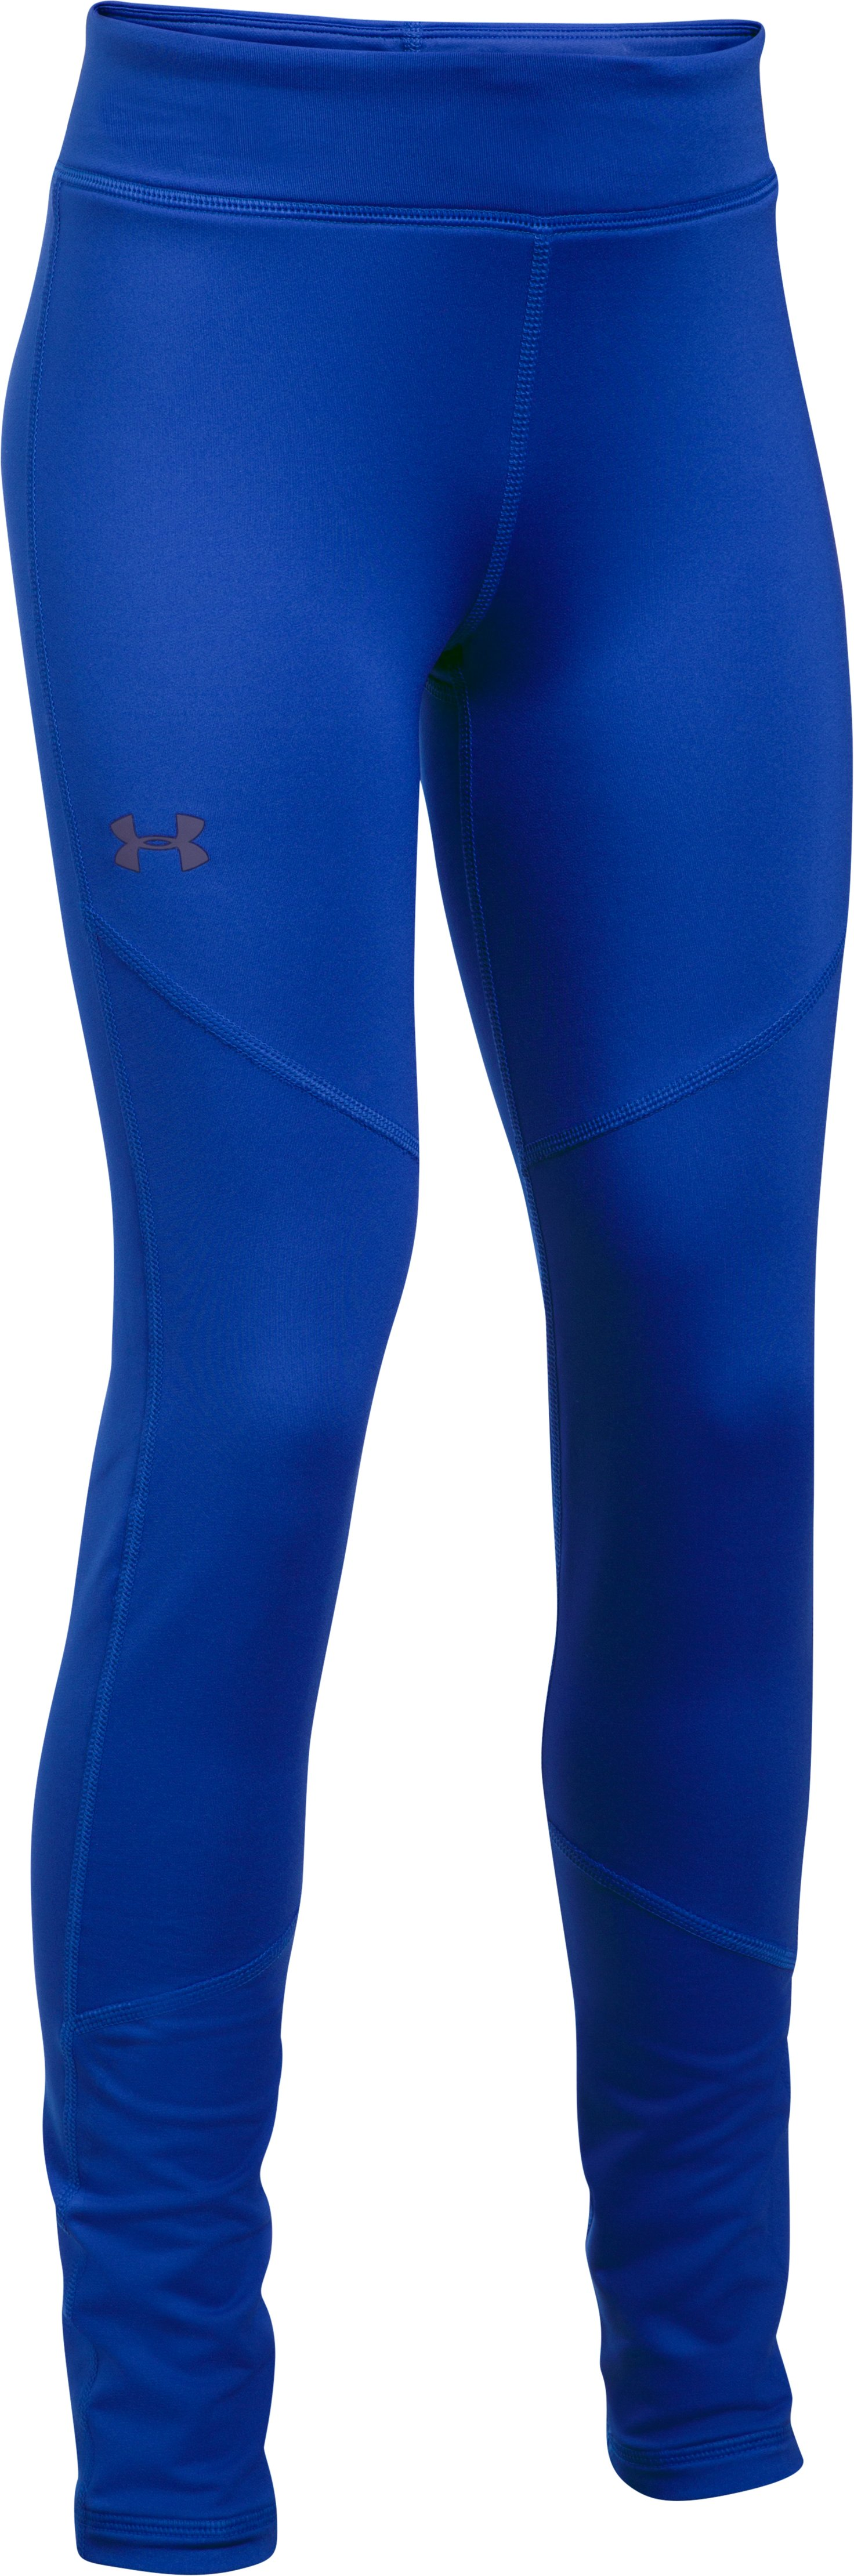 Girls' ColdGear® Leggings, LAPIS BLUE,